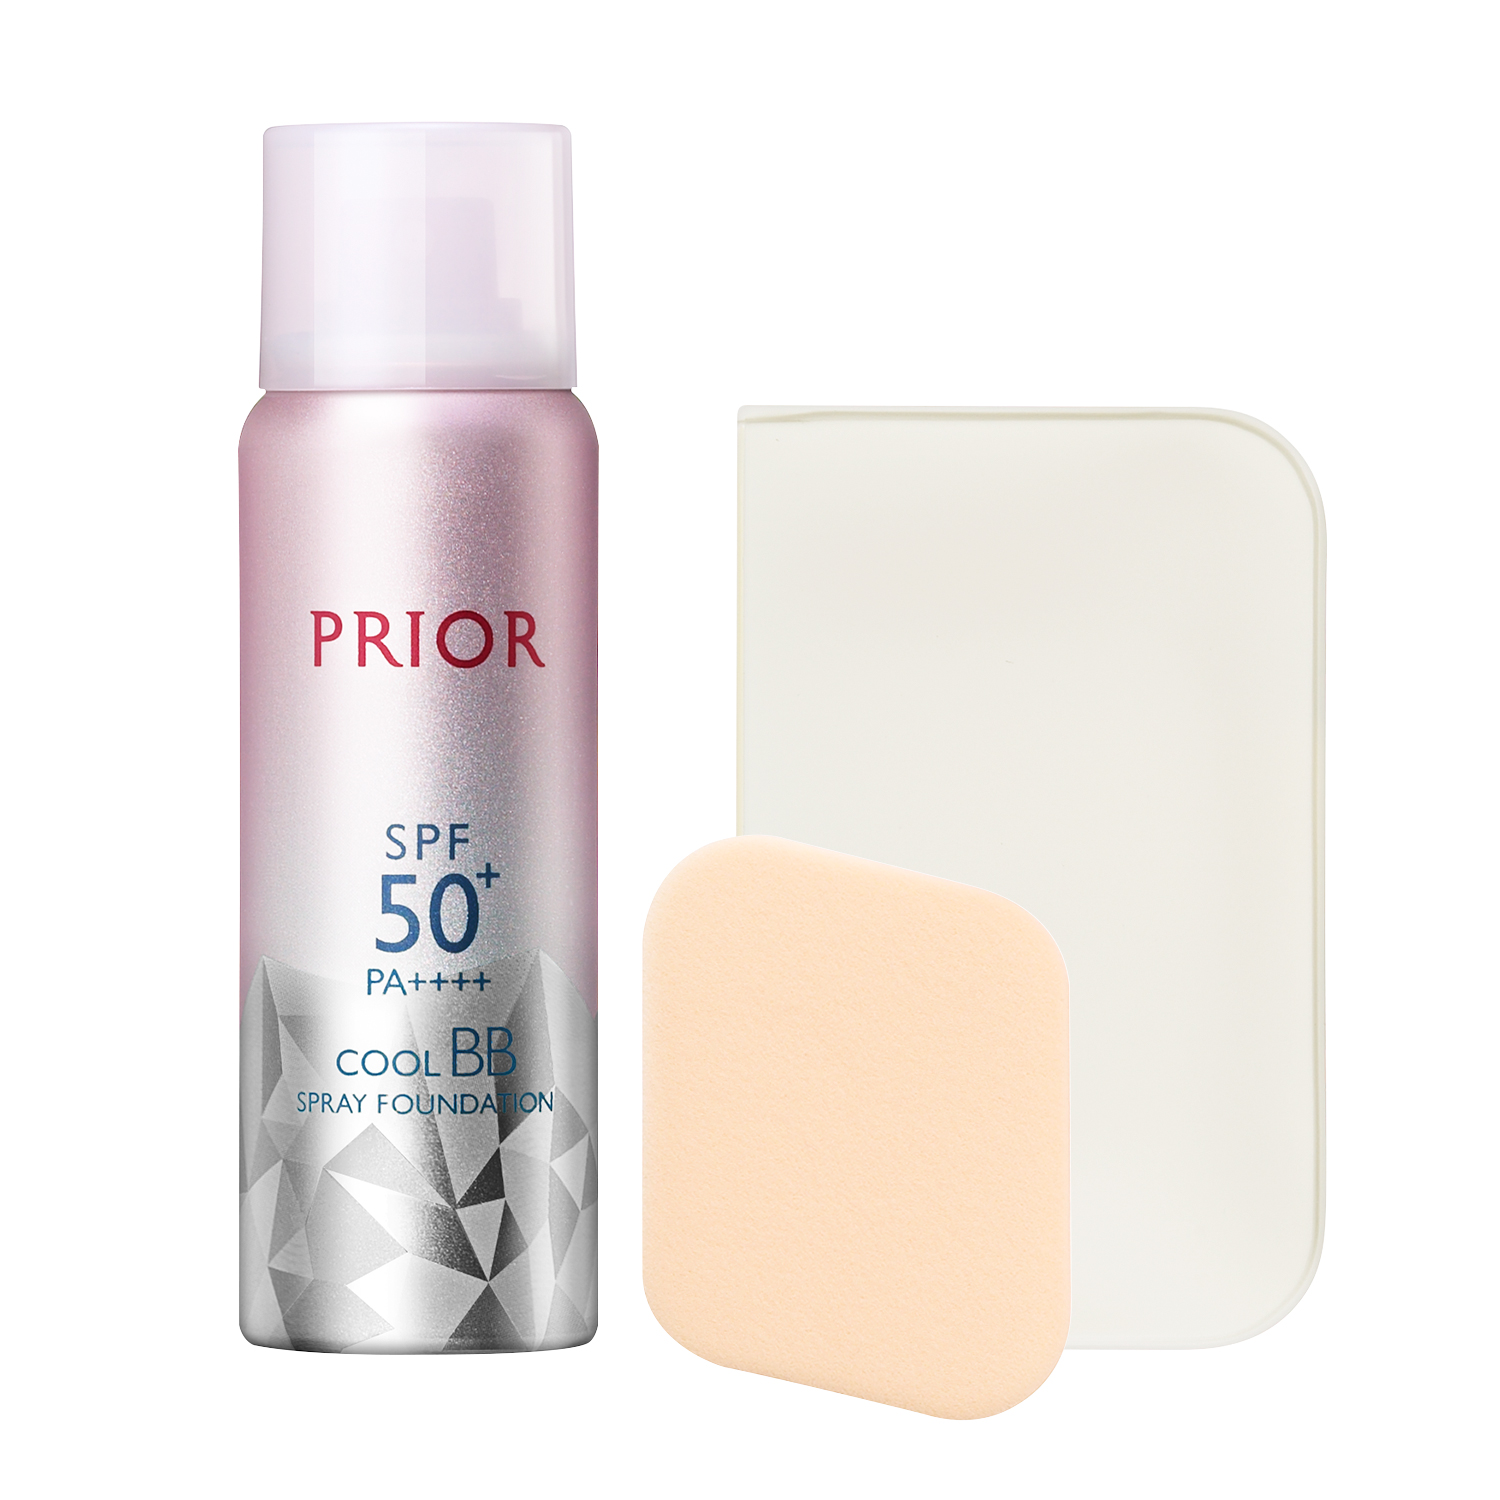 PRIOR Cool BB Spray Foundation UV 50 d Light